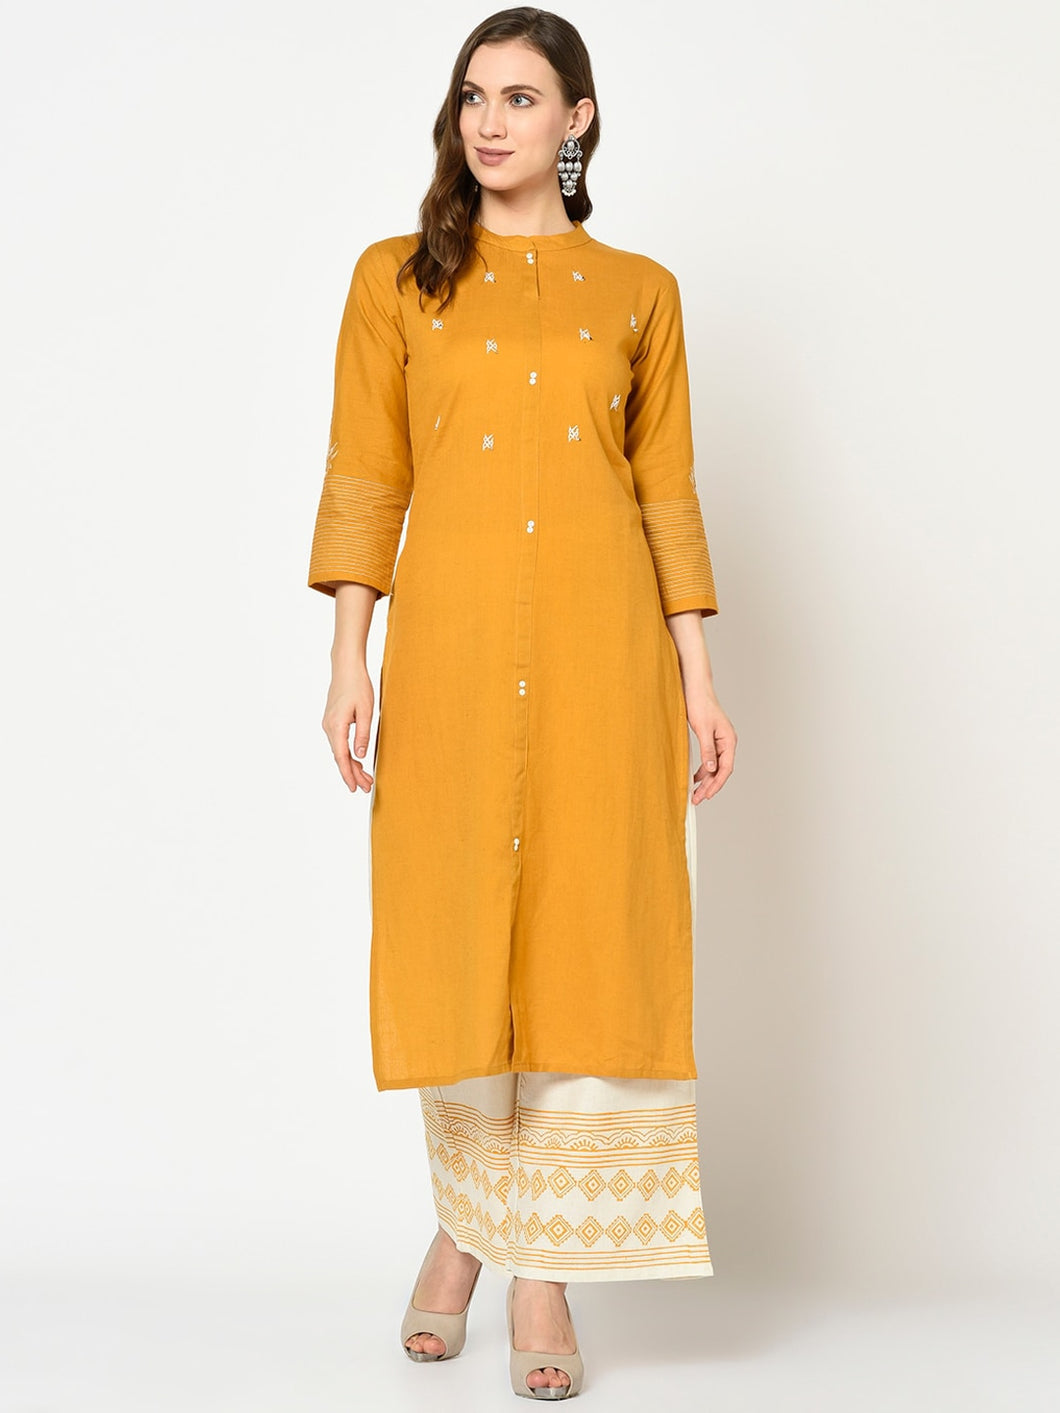 Yufta Women Mustard Yellow & White Yoke Design Kurta with Palazzos